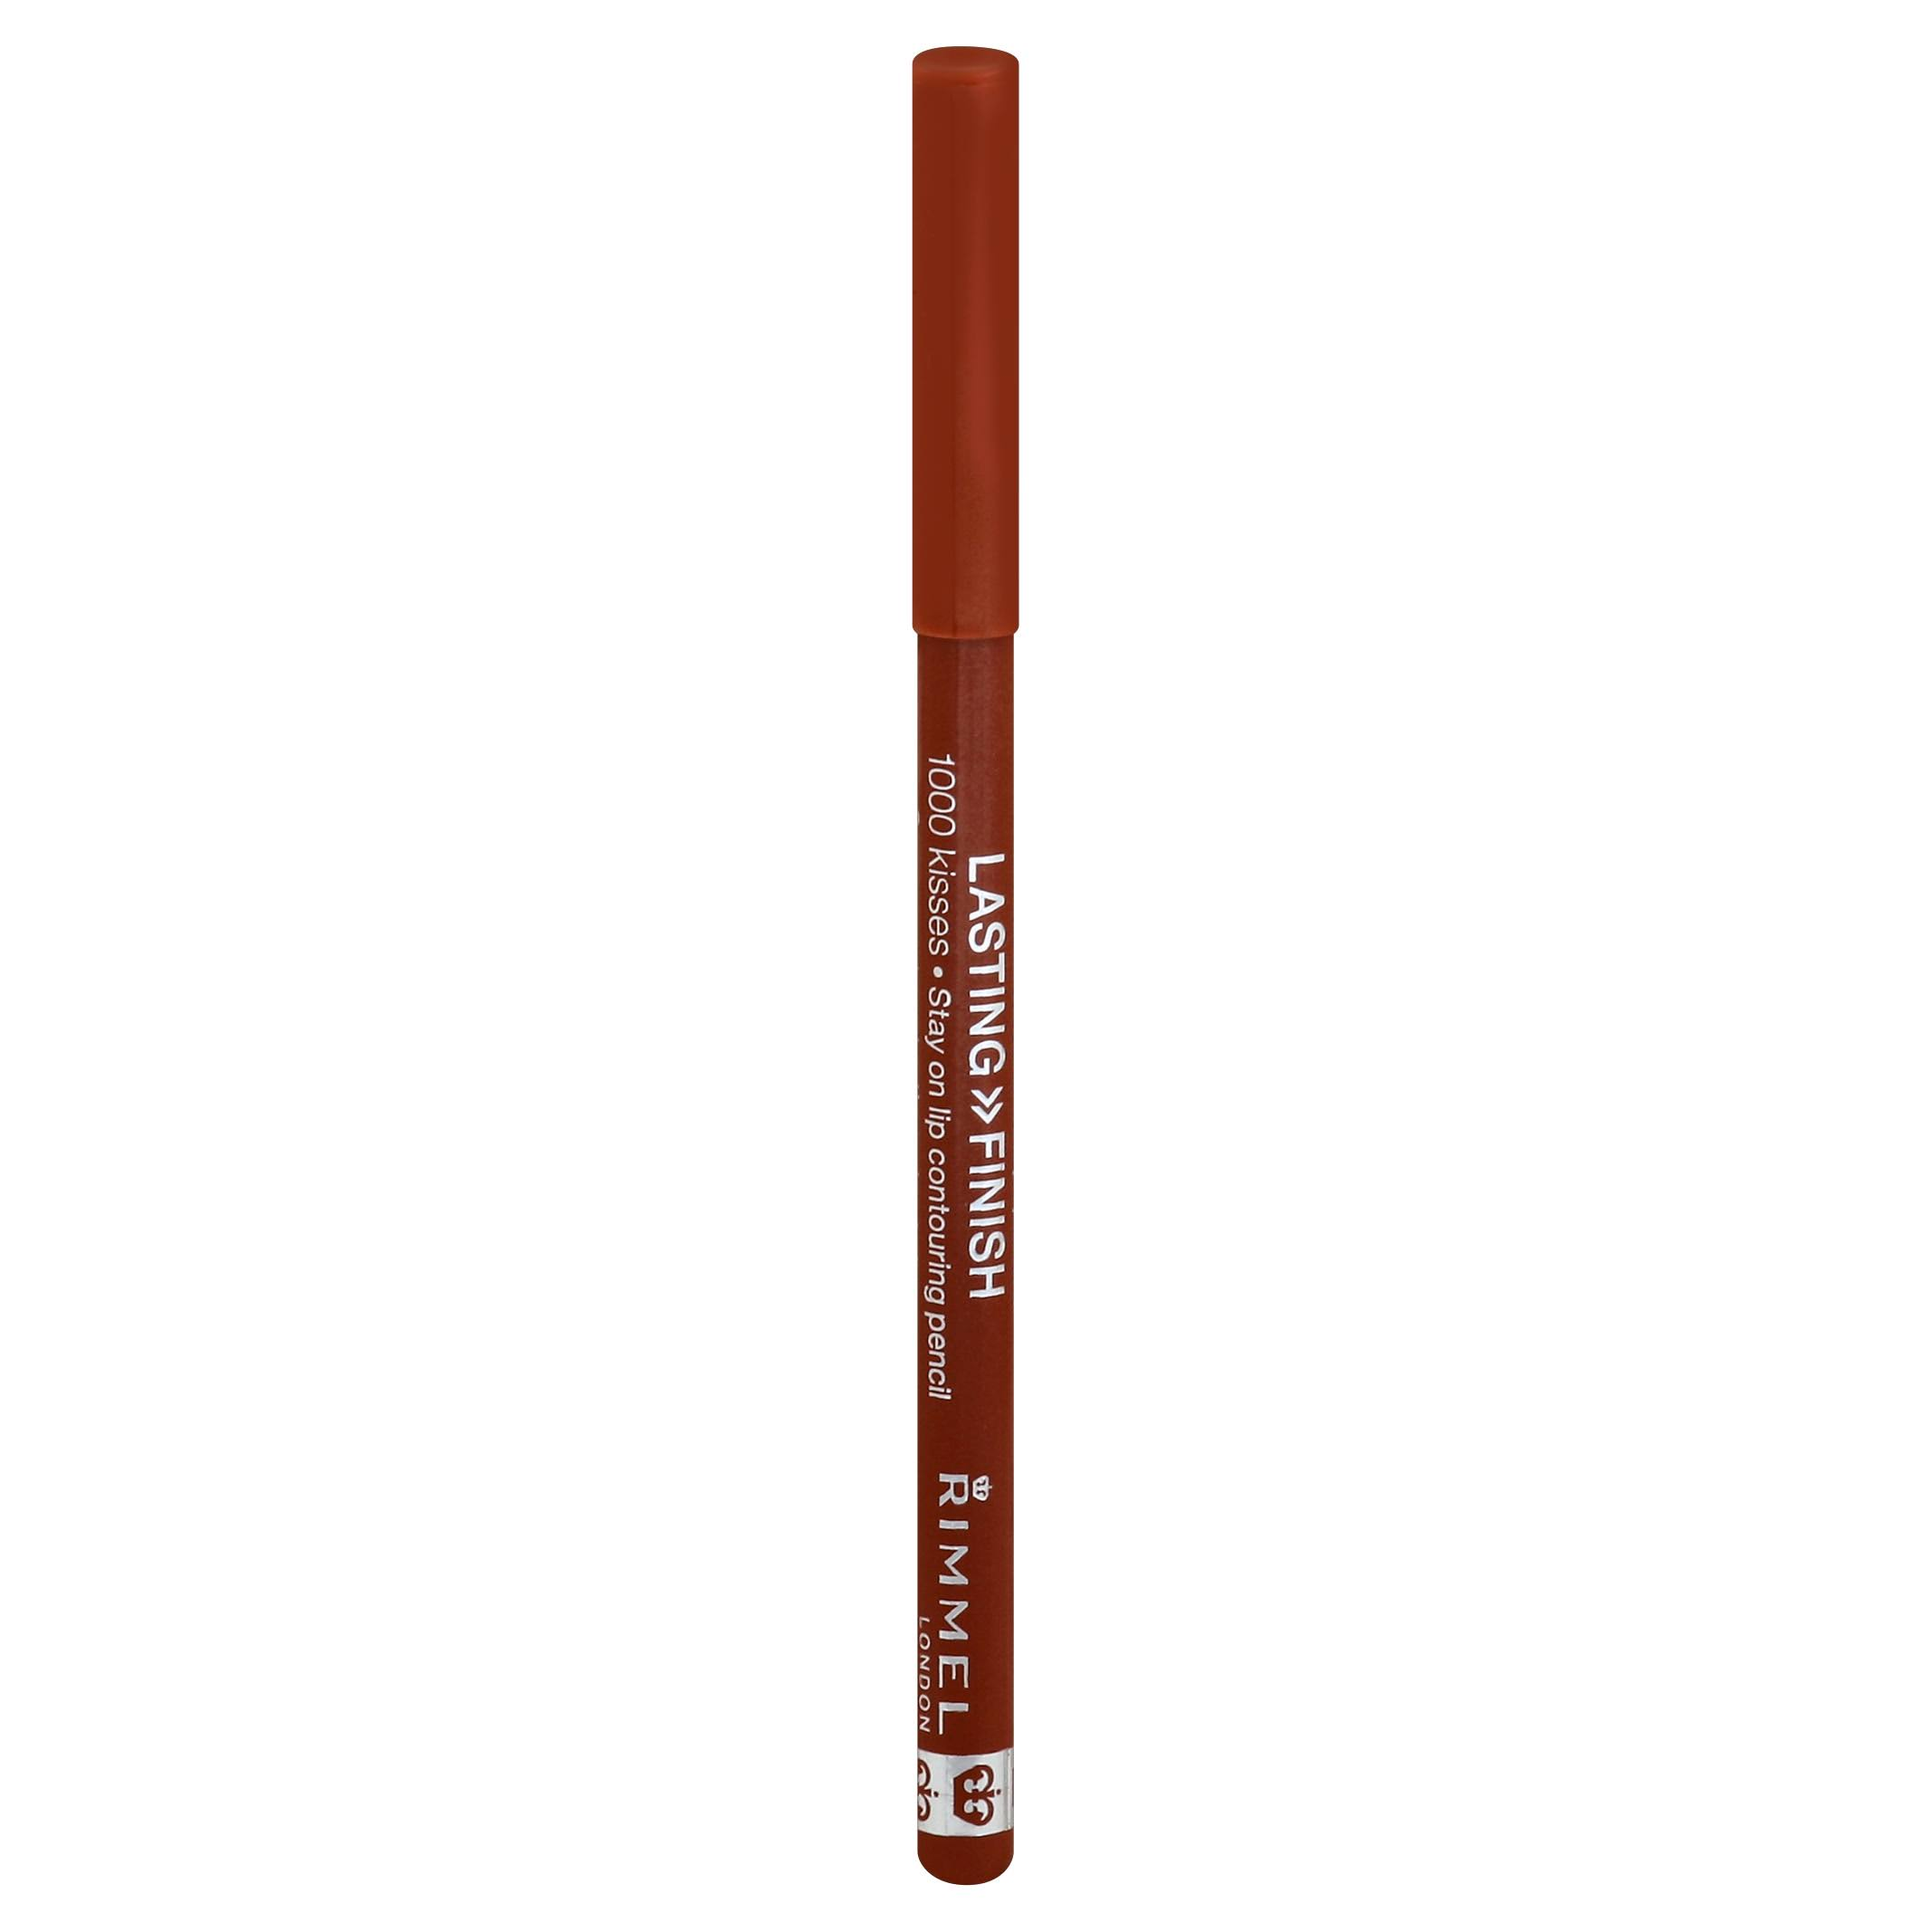 Rimmel London Lasting Finish 1000 Kisses Lip Liner - 050 Tiramisu, 1.2g